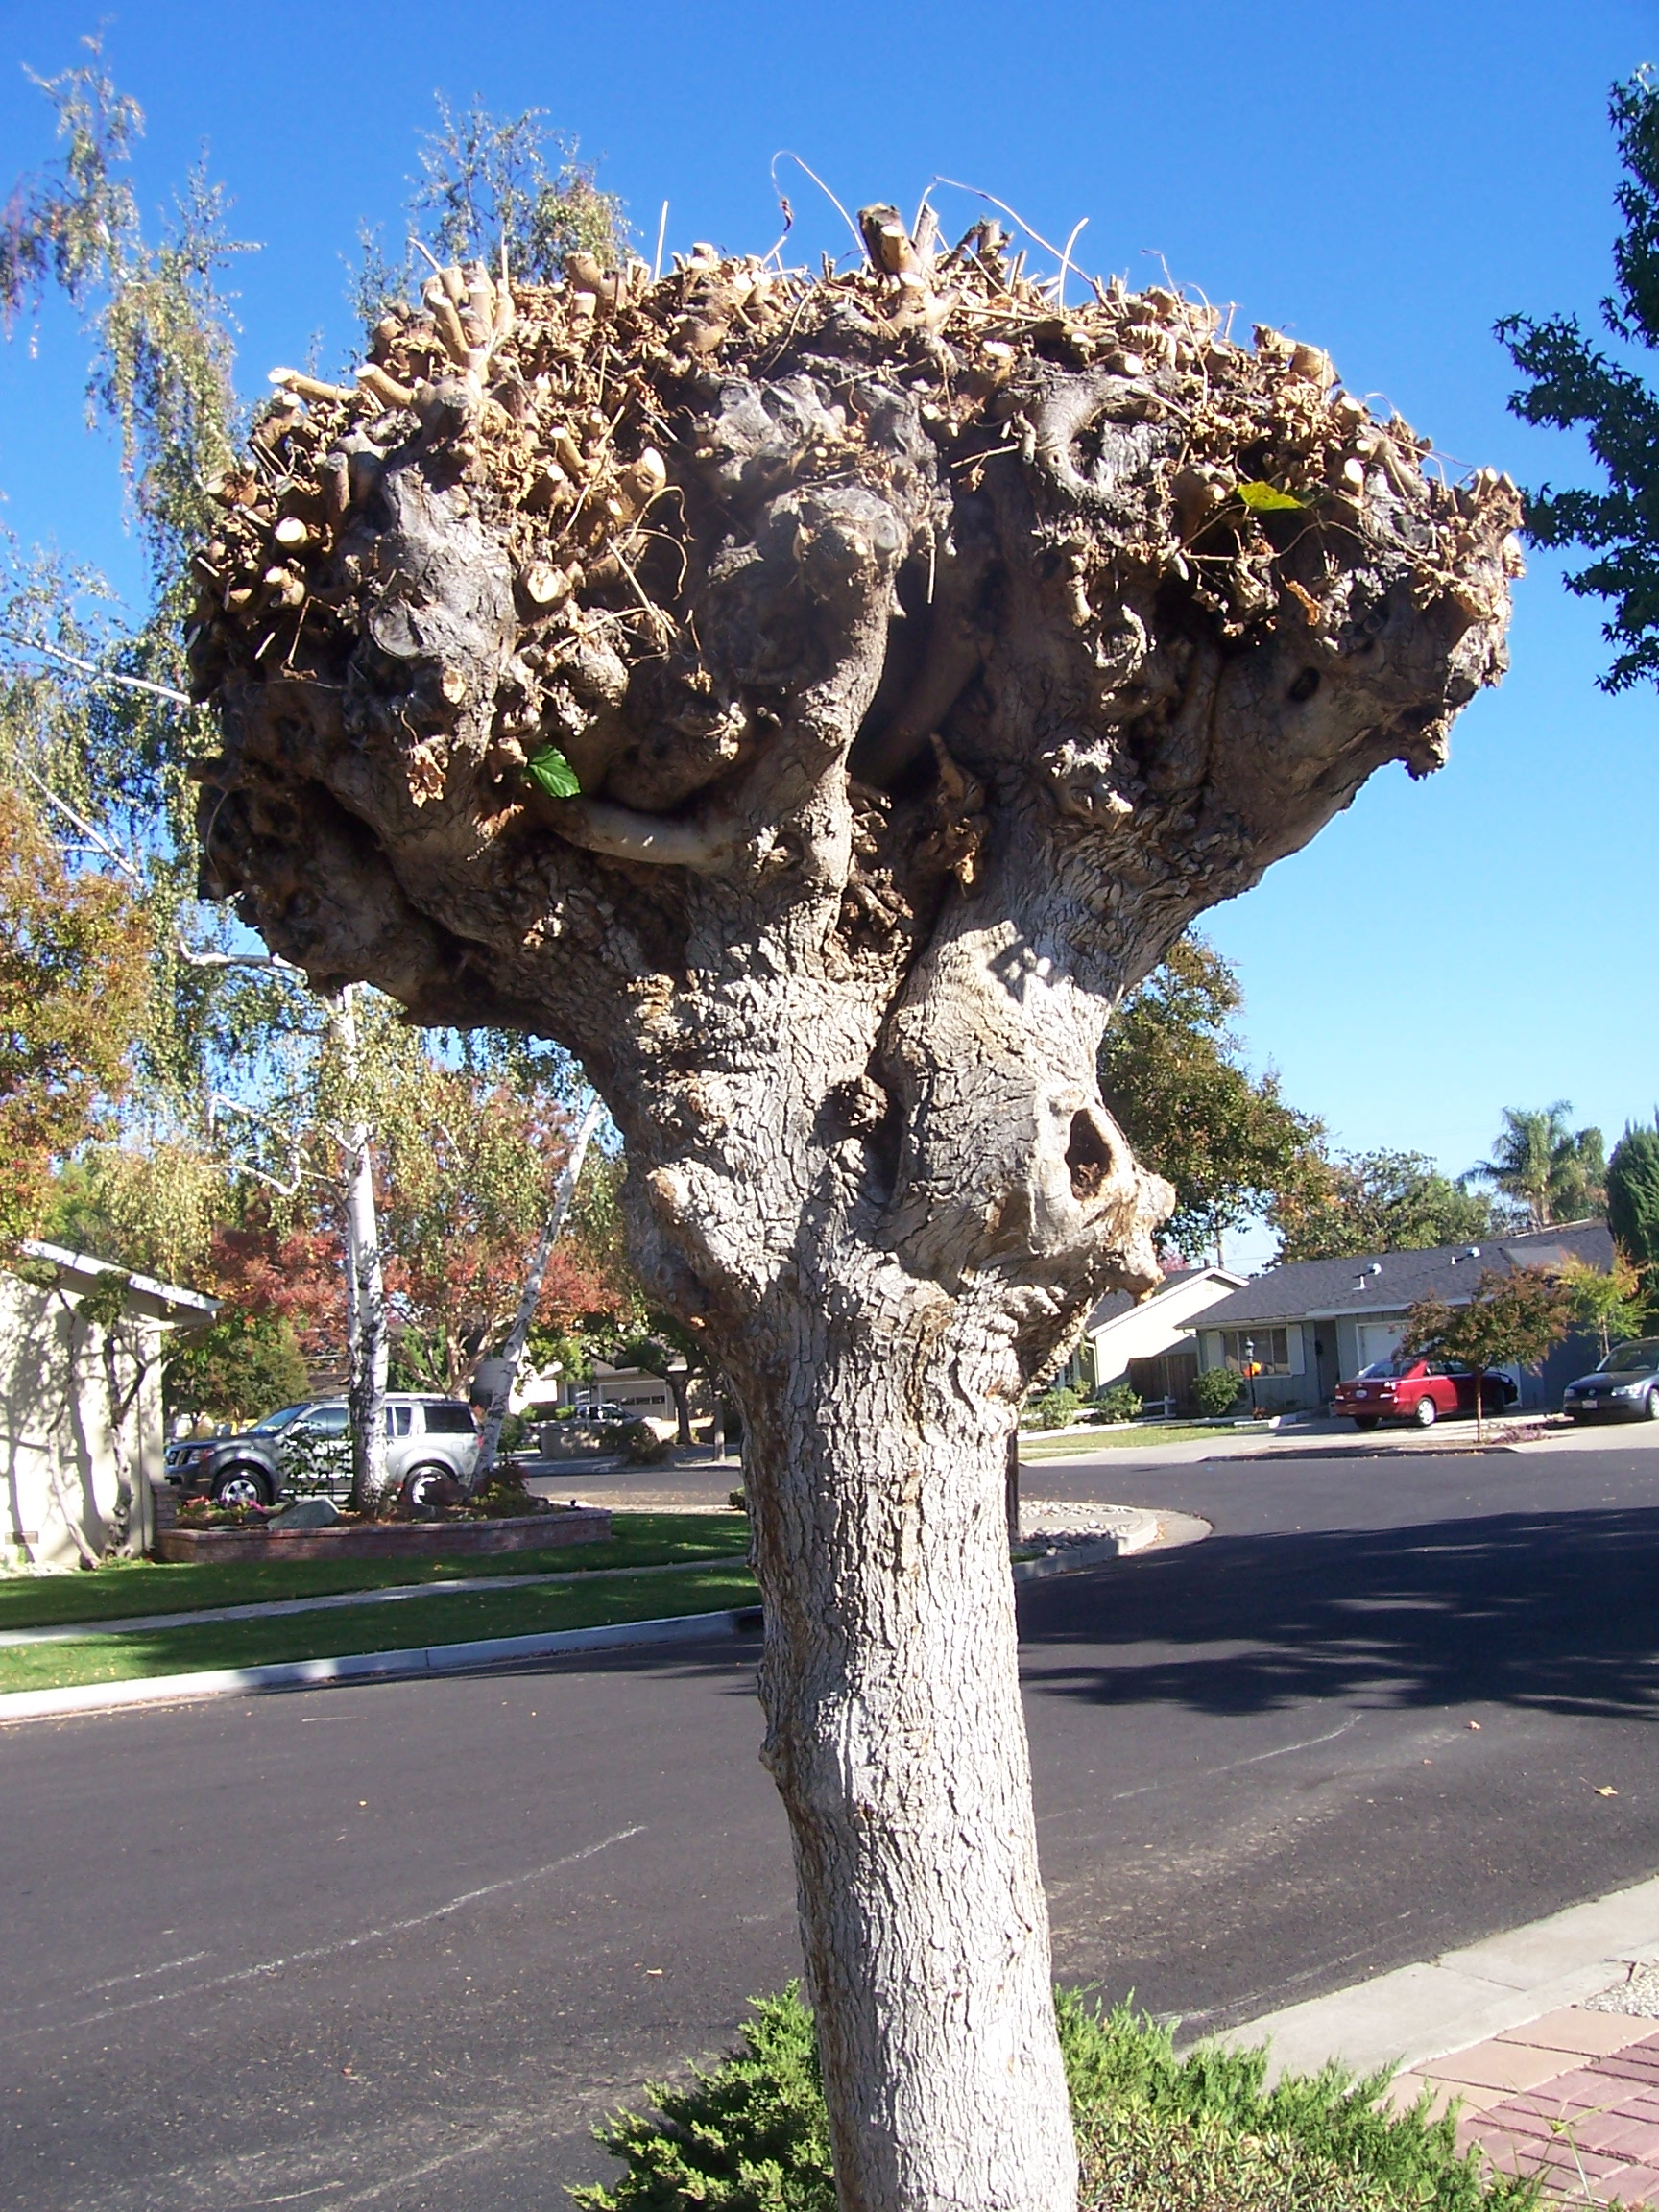 Pictured: A mulberry tree that has been subject to repeated pruning, (pollarding). Pollarding is a dangerous technique that removes the annual growth of a tree, leaving poor structure and disfiguring scar tissue.